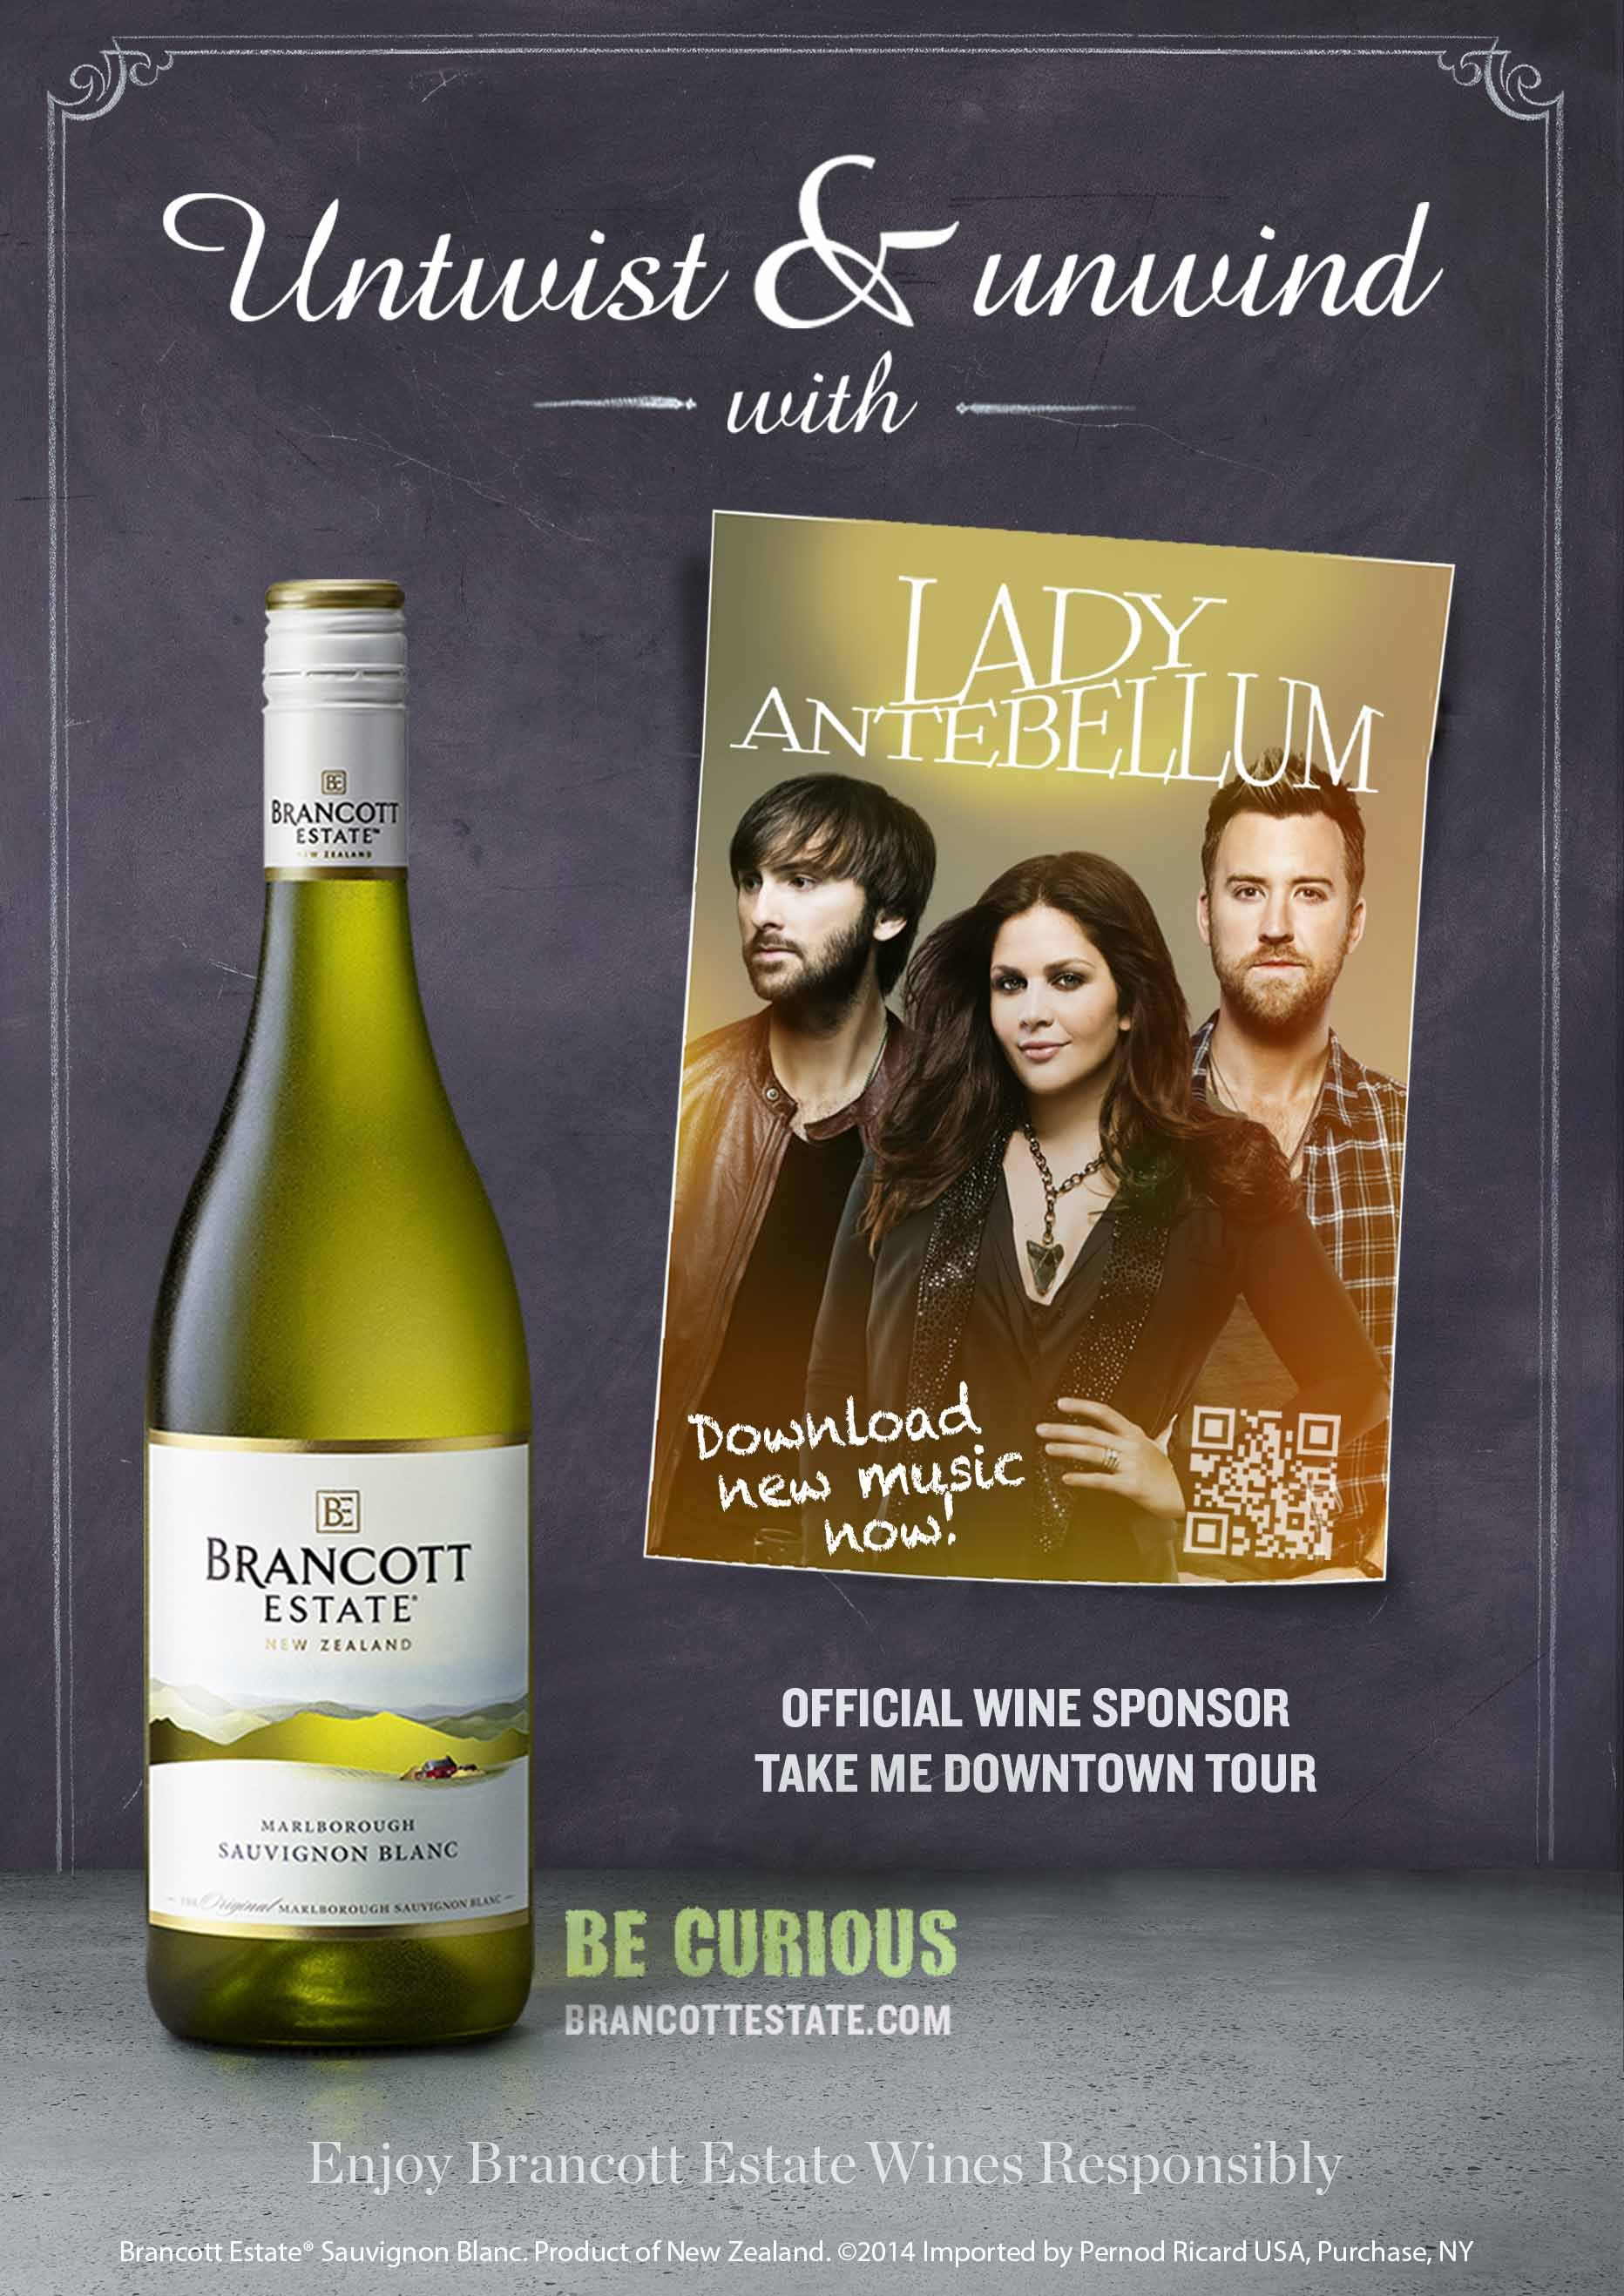 Brancott Estate(TM) is bringing an exciting music based program to consumers by creating a marketing partnering with seven time Grammy Award winning band Lady Antebellum. (Photo: Business Wire)